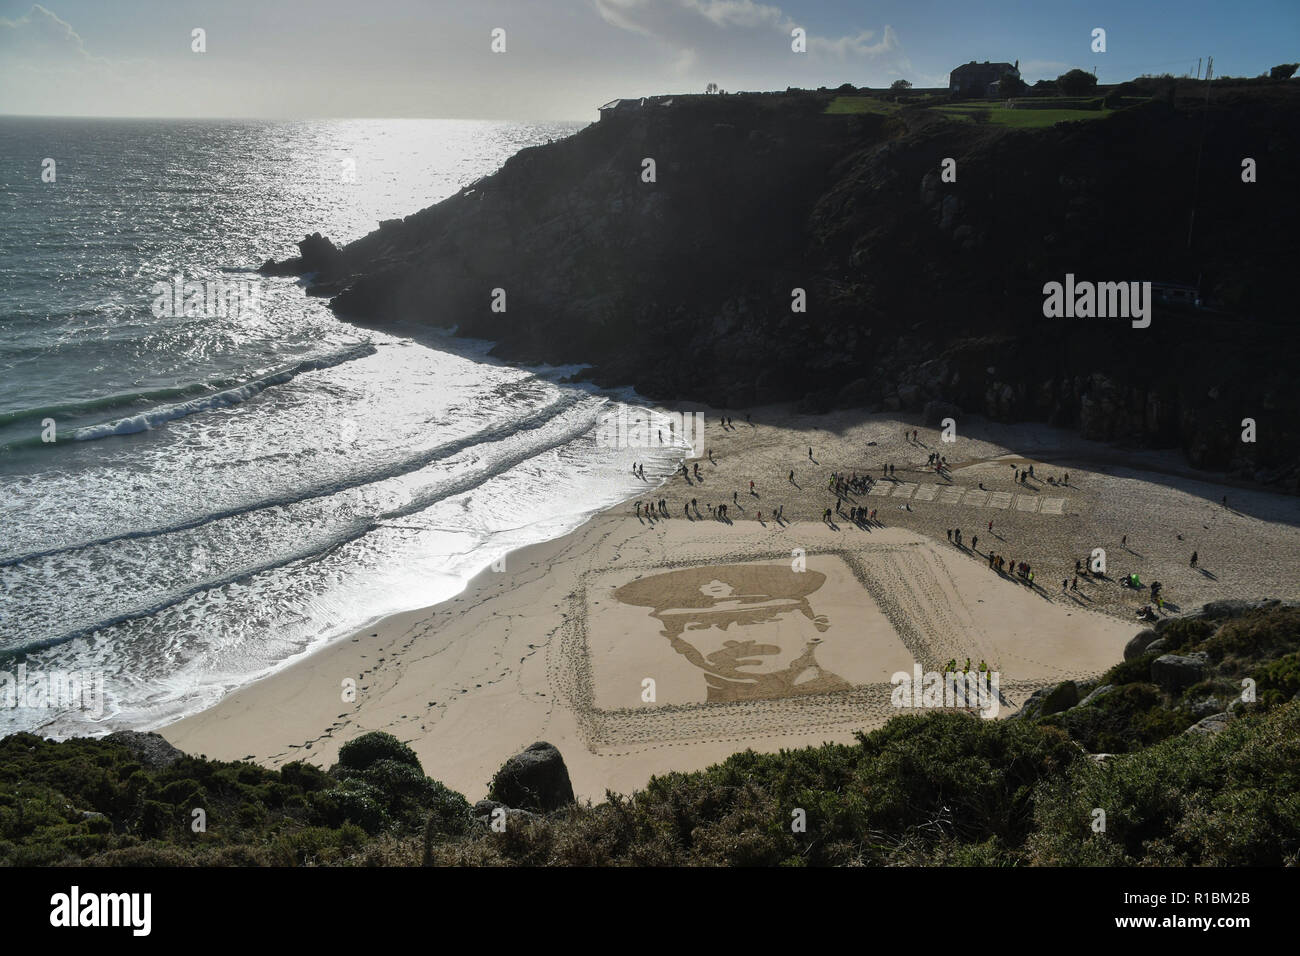 Porthcurno, Cornwall, UK. 11th Nov, 2018. A giant sand images was made on the beach at Porthcurno today. It was part of the 14-18 Now art commissions. This image depects RICHARD CHARLES GRAVES-SAWLE COLDSTREAM GUARDS AGE: 26 DATE OF DEATH: 02/11/1914 Son of Rear-Admiral Sir Charles Graves-Sawle, 4th Bart, and Lady Graves-Sawle, of 60, Queen's Gate, London; husband of Muriel Heaton-Ellis (now Mrs. A. L. C. Cavendish). Credit: Simon Maycock/Alamy Live News - Stock Image